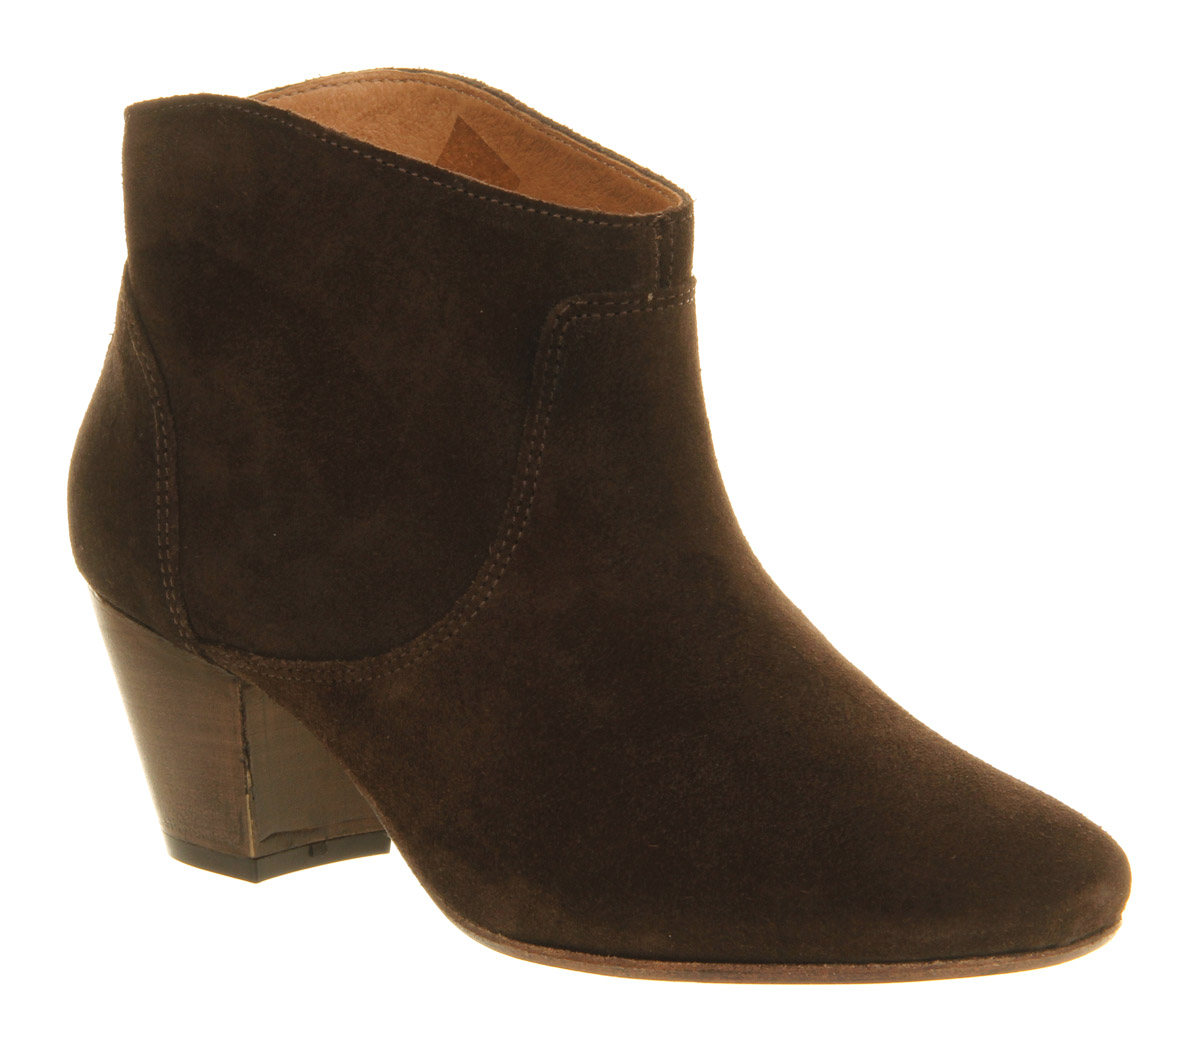 H by hudson Mirar Heeled Ankle Boot Chocolate Brown Suede in Brown ...